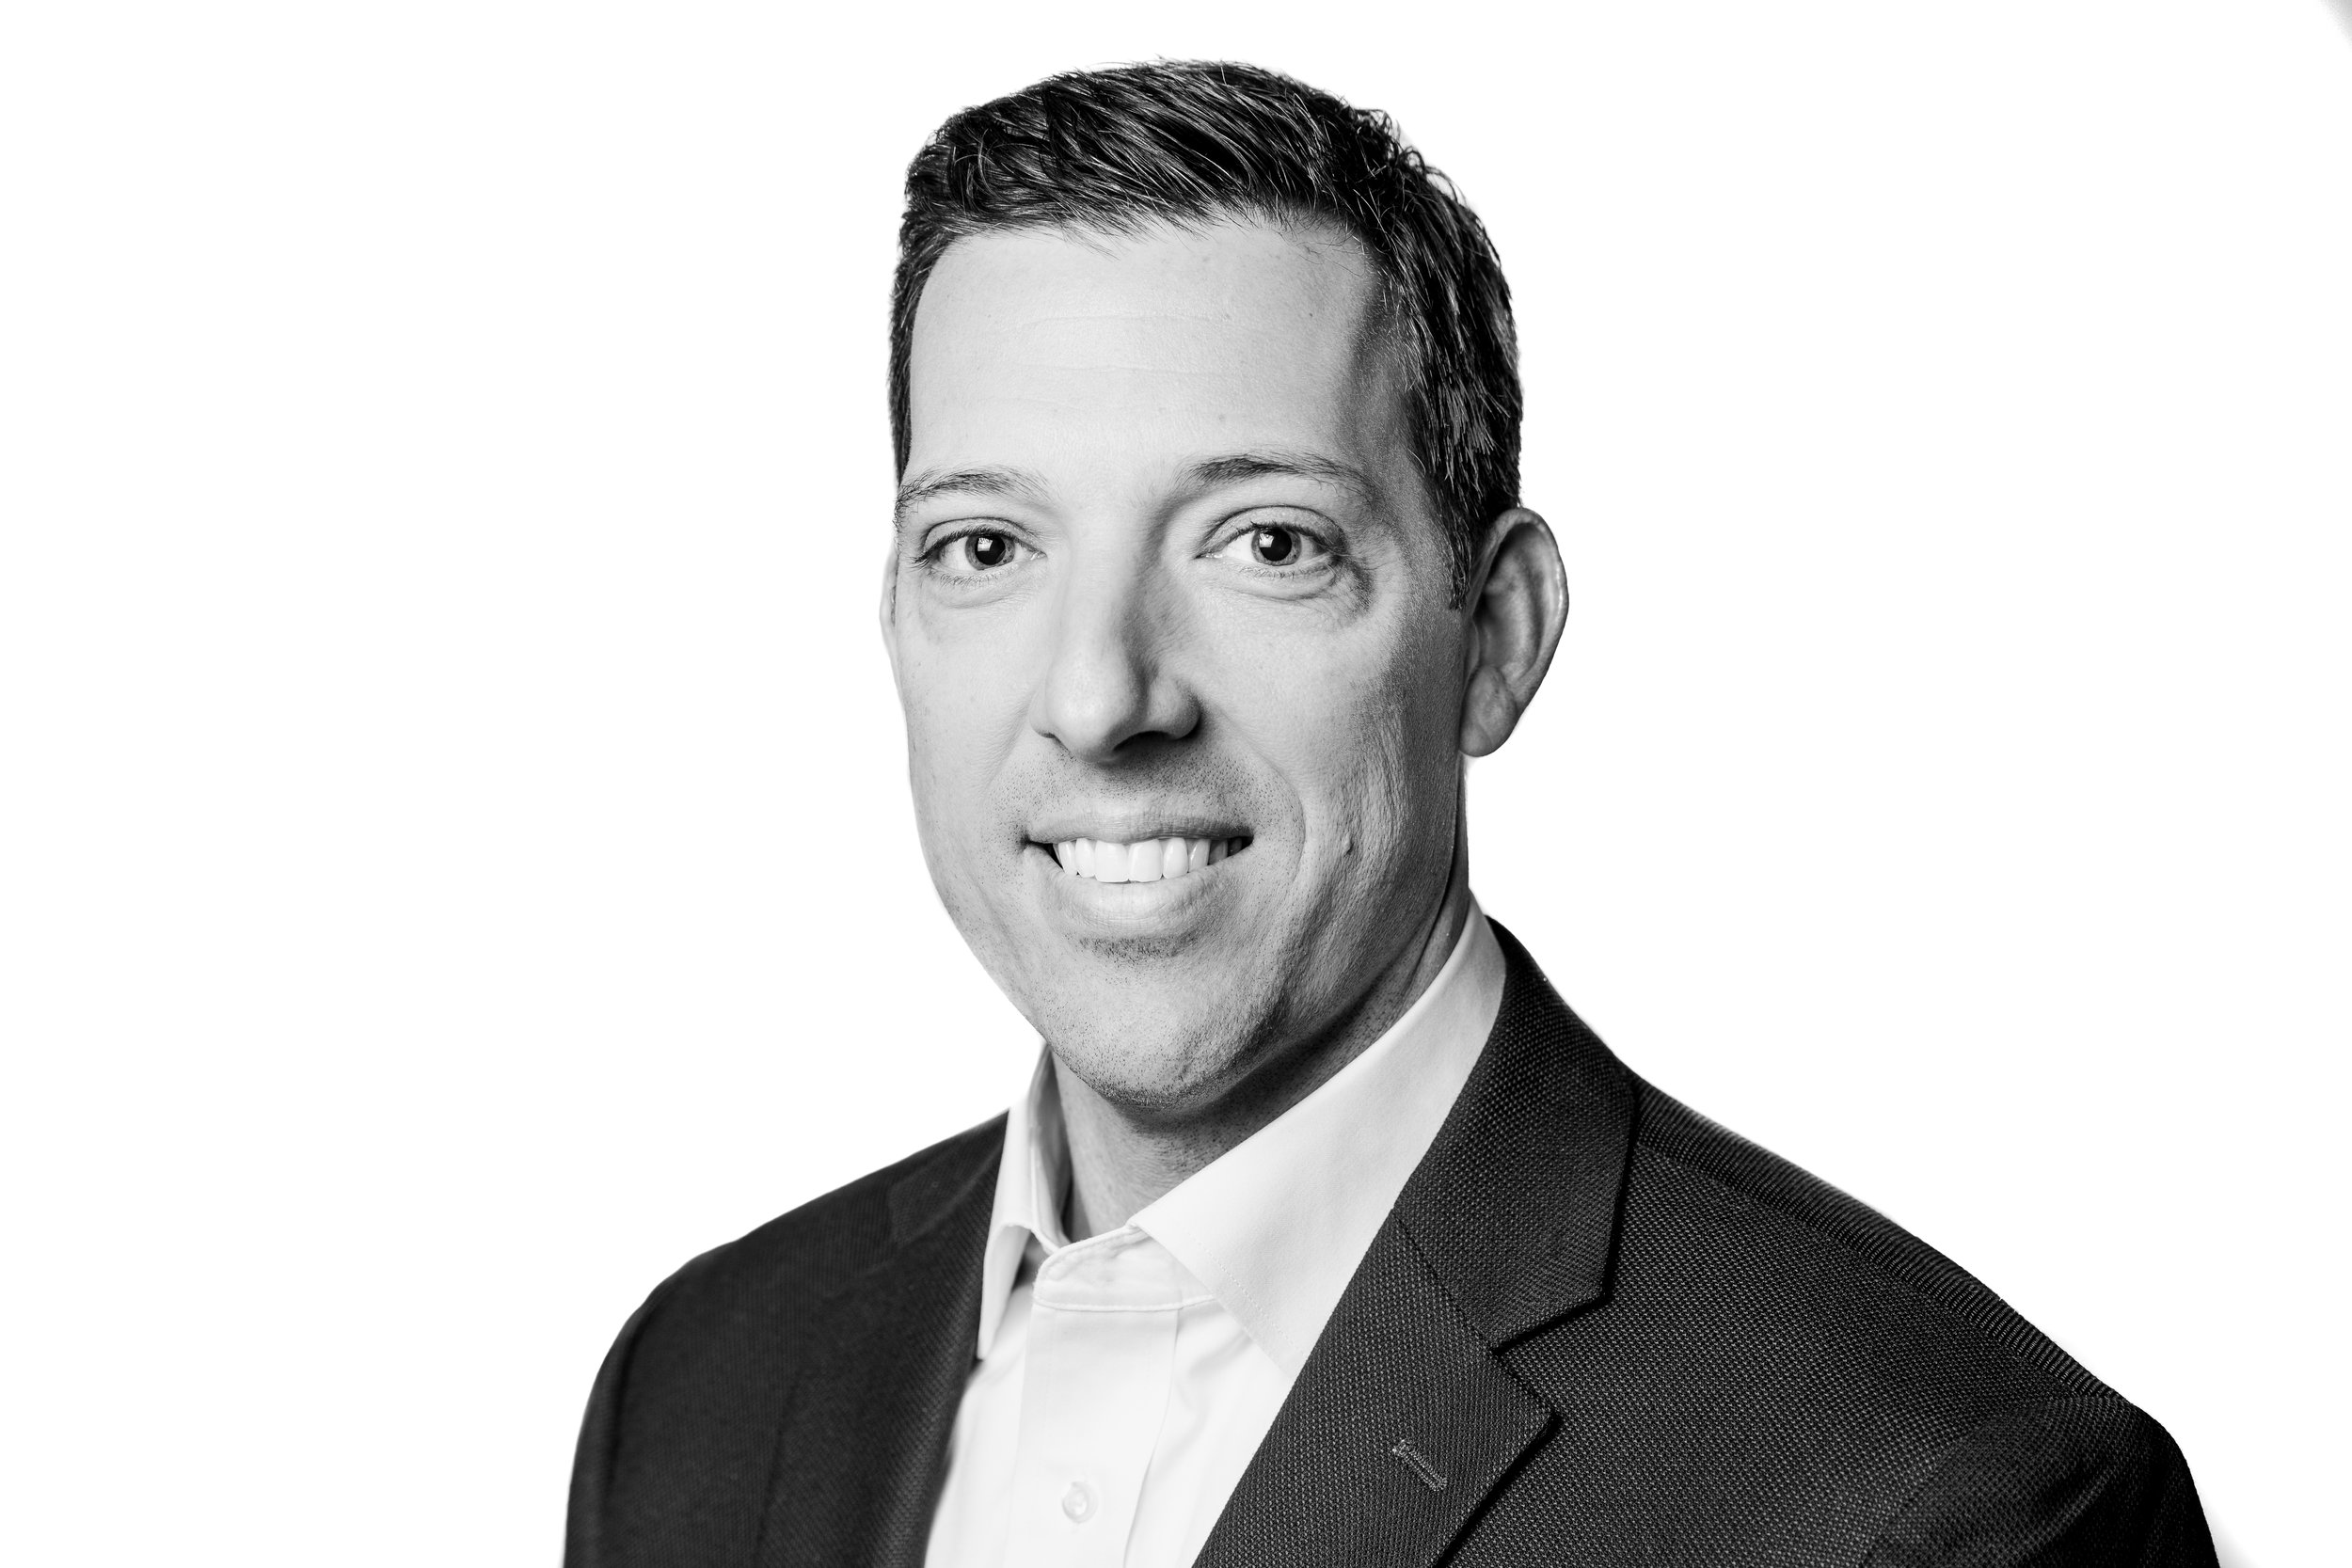 Joe Bertucci, Director - An expert in commercial and corporate real estate, Joe Bertucci brings 15 years of experience to The 360 Group. As the former Senior Real Estate Manager for Giant Eagle and an Area Real Estate Manager for McDonald's, Joe has seen it all and then some!